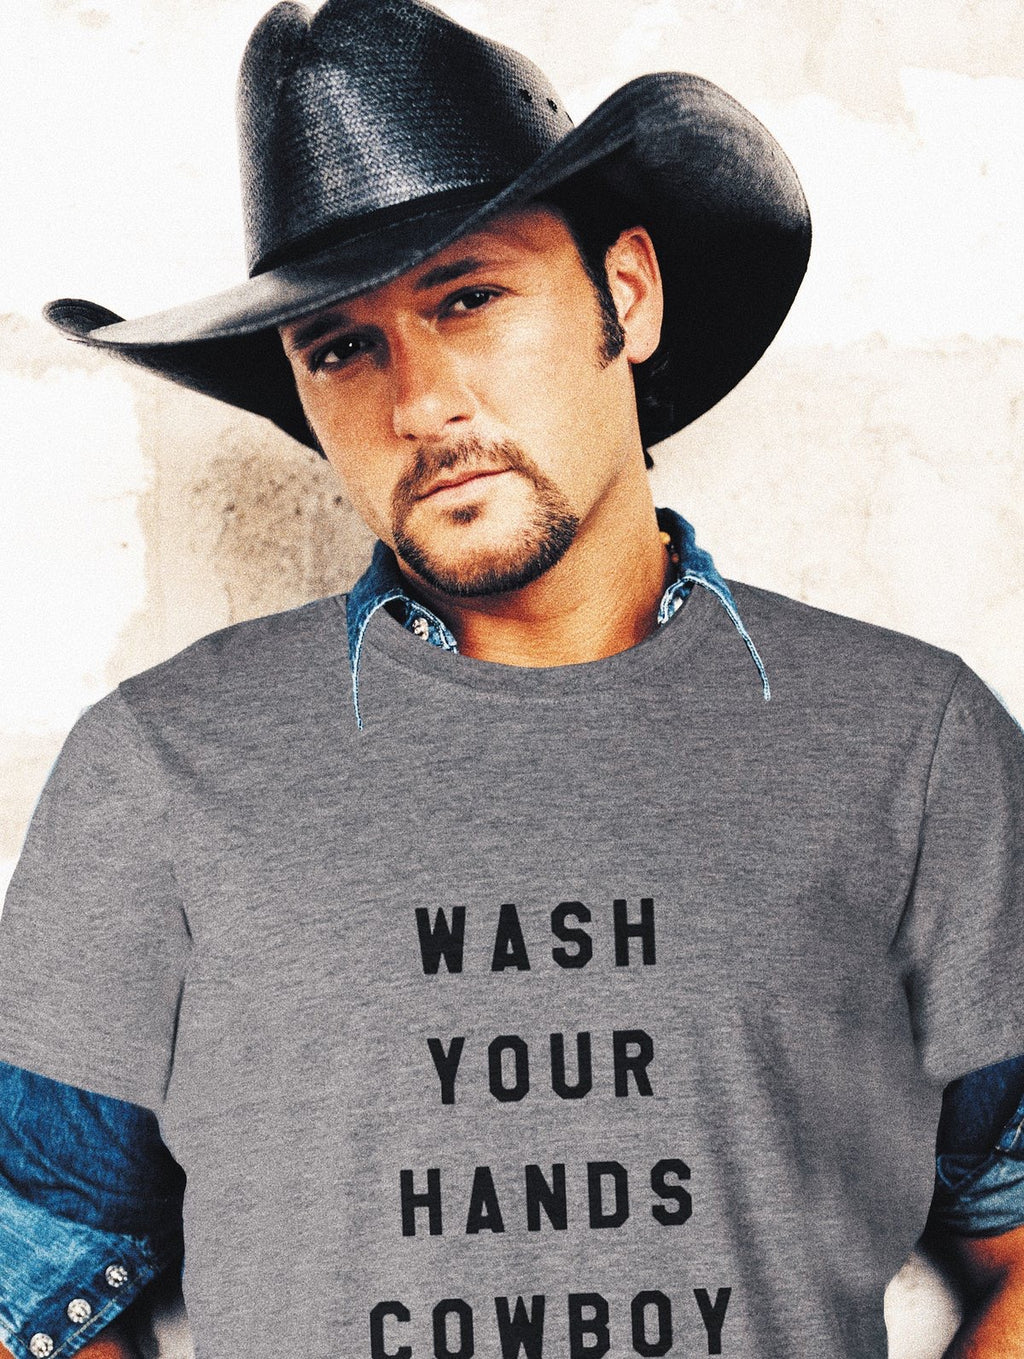 Wash Your Hands Cowboy